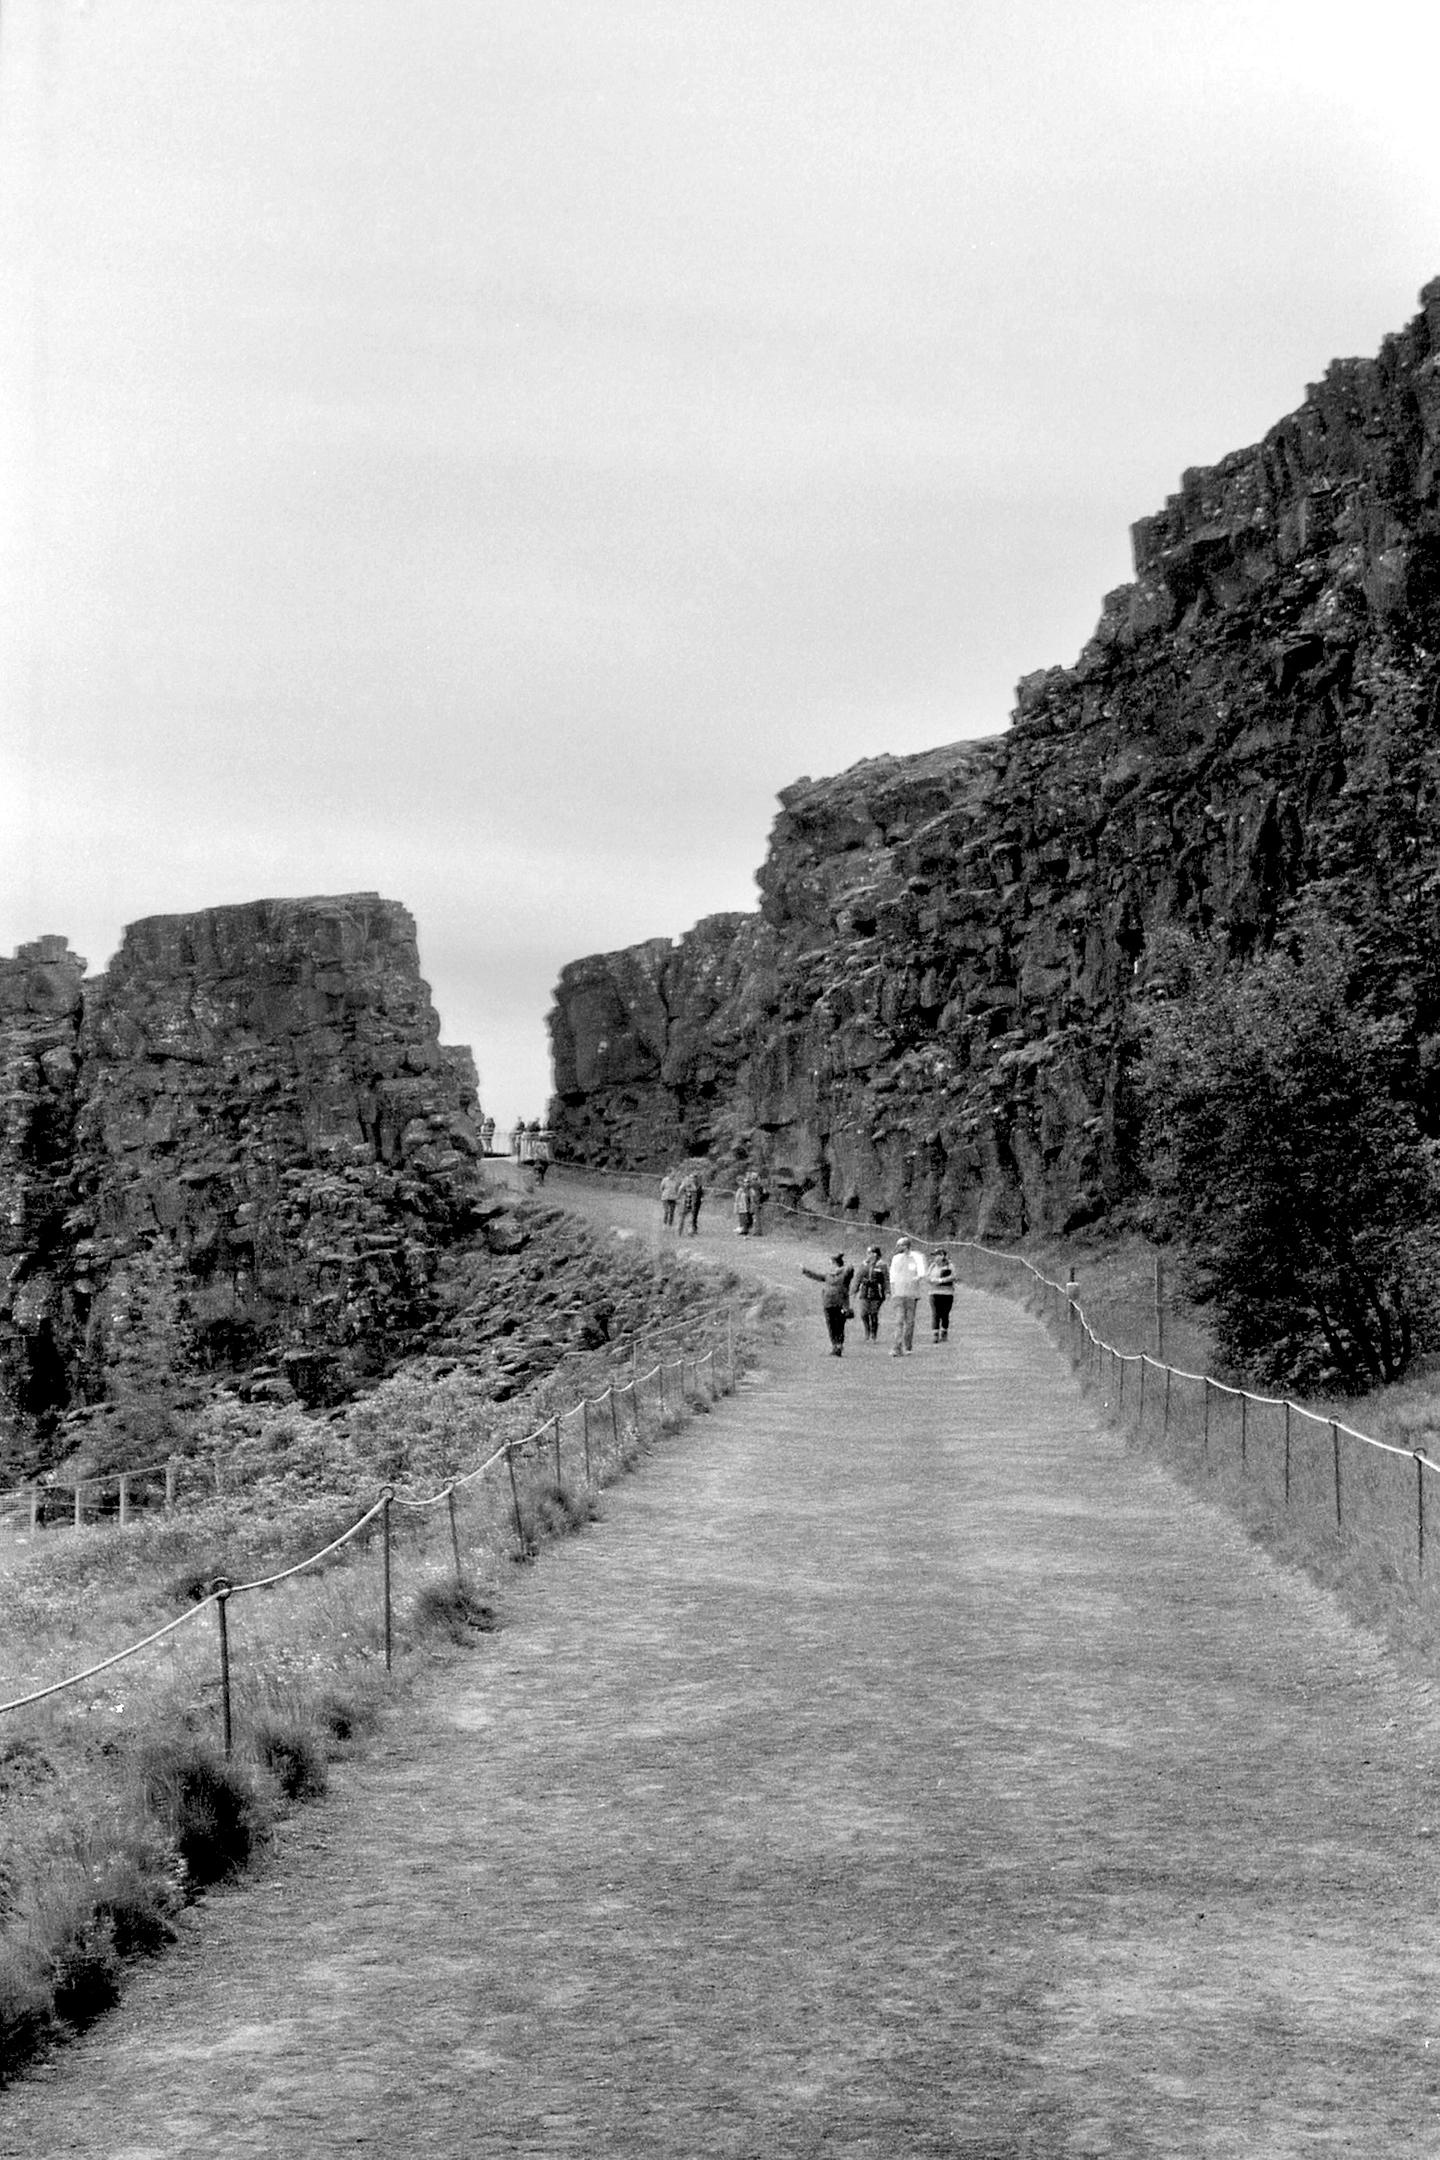 The Walk between Tectonic Plates, Iceland 2019   Edition 1 of 2